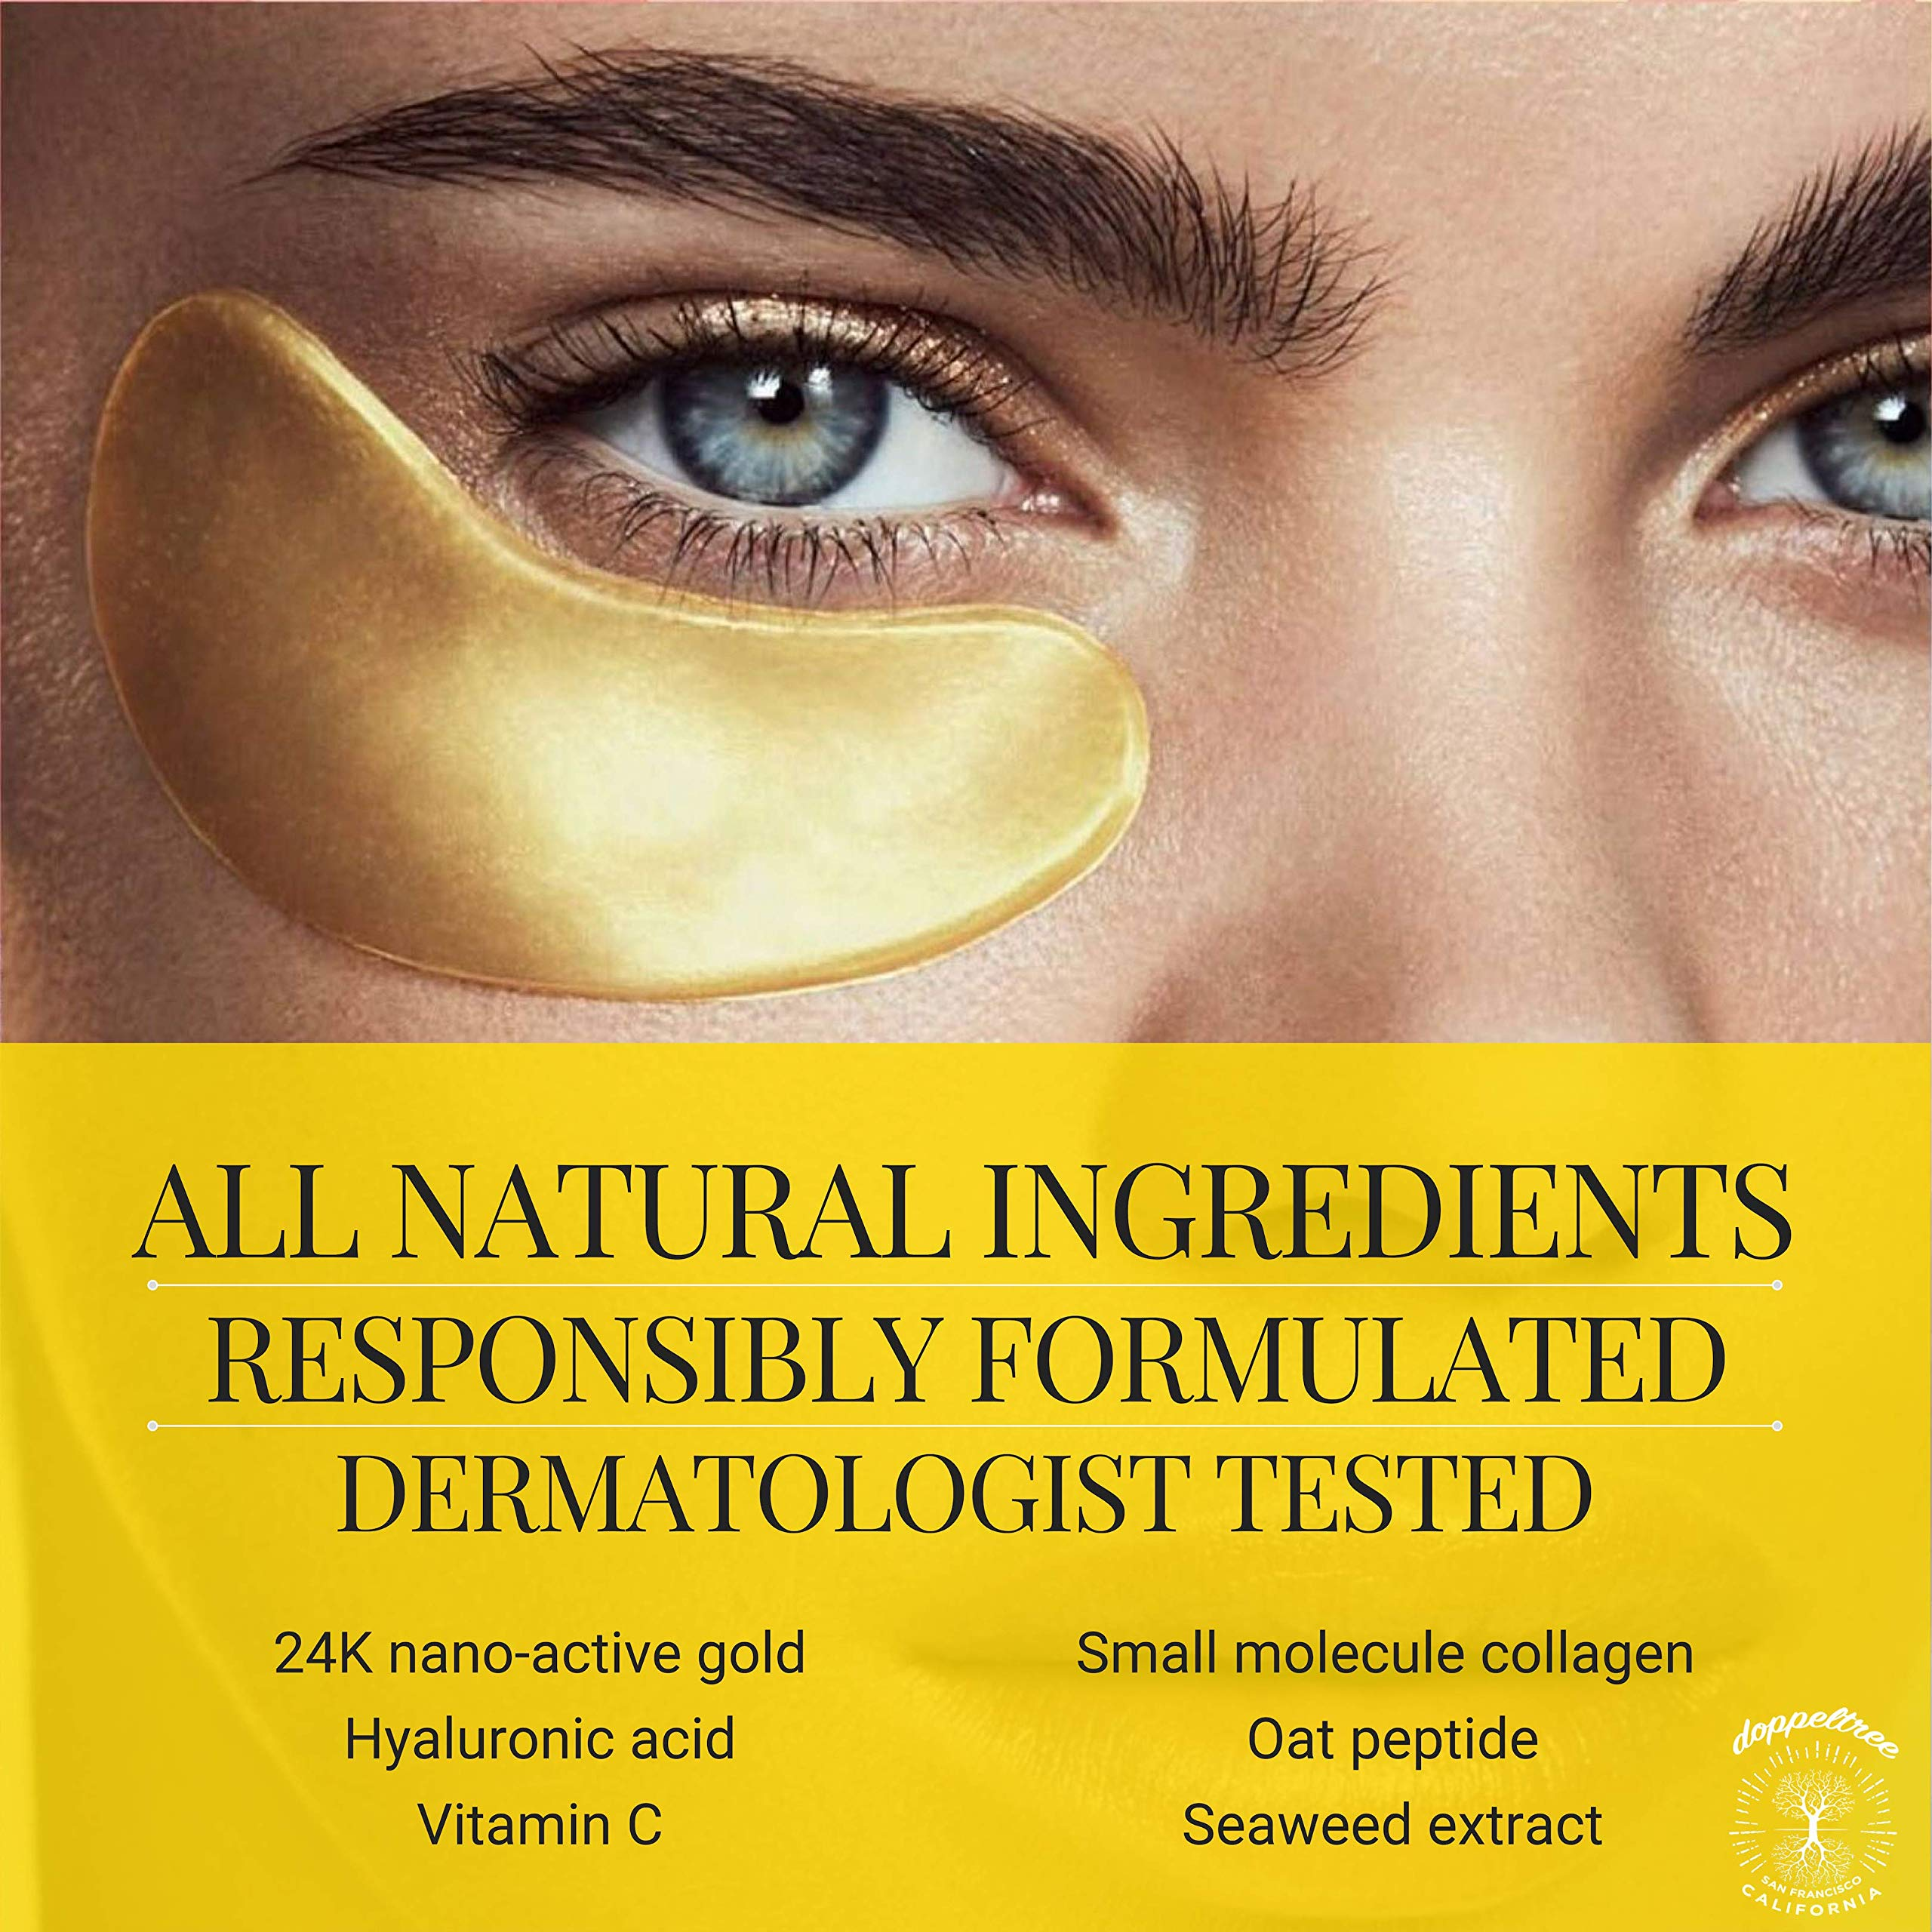 (18 Pairs) All Natural Under Eye Patches & Masks | Best Treatment for Bags & Puffiness, Wrinkles and Dark Circles | 24K Gold, Anti Aging Collagen, Hyaluronic Acid, Hydrogel | Designed in San Francisco by Doppeltree (Image #2)